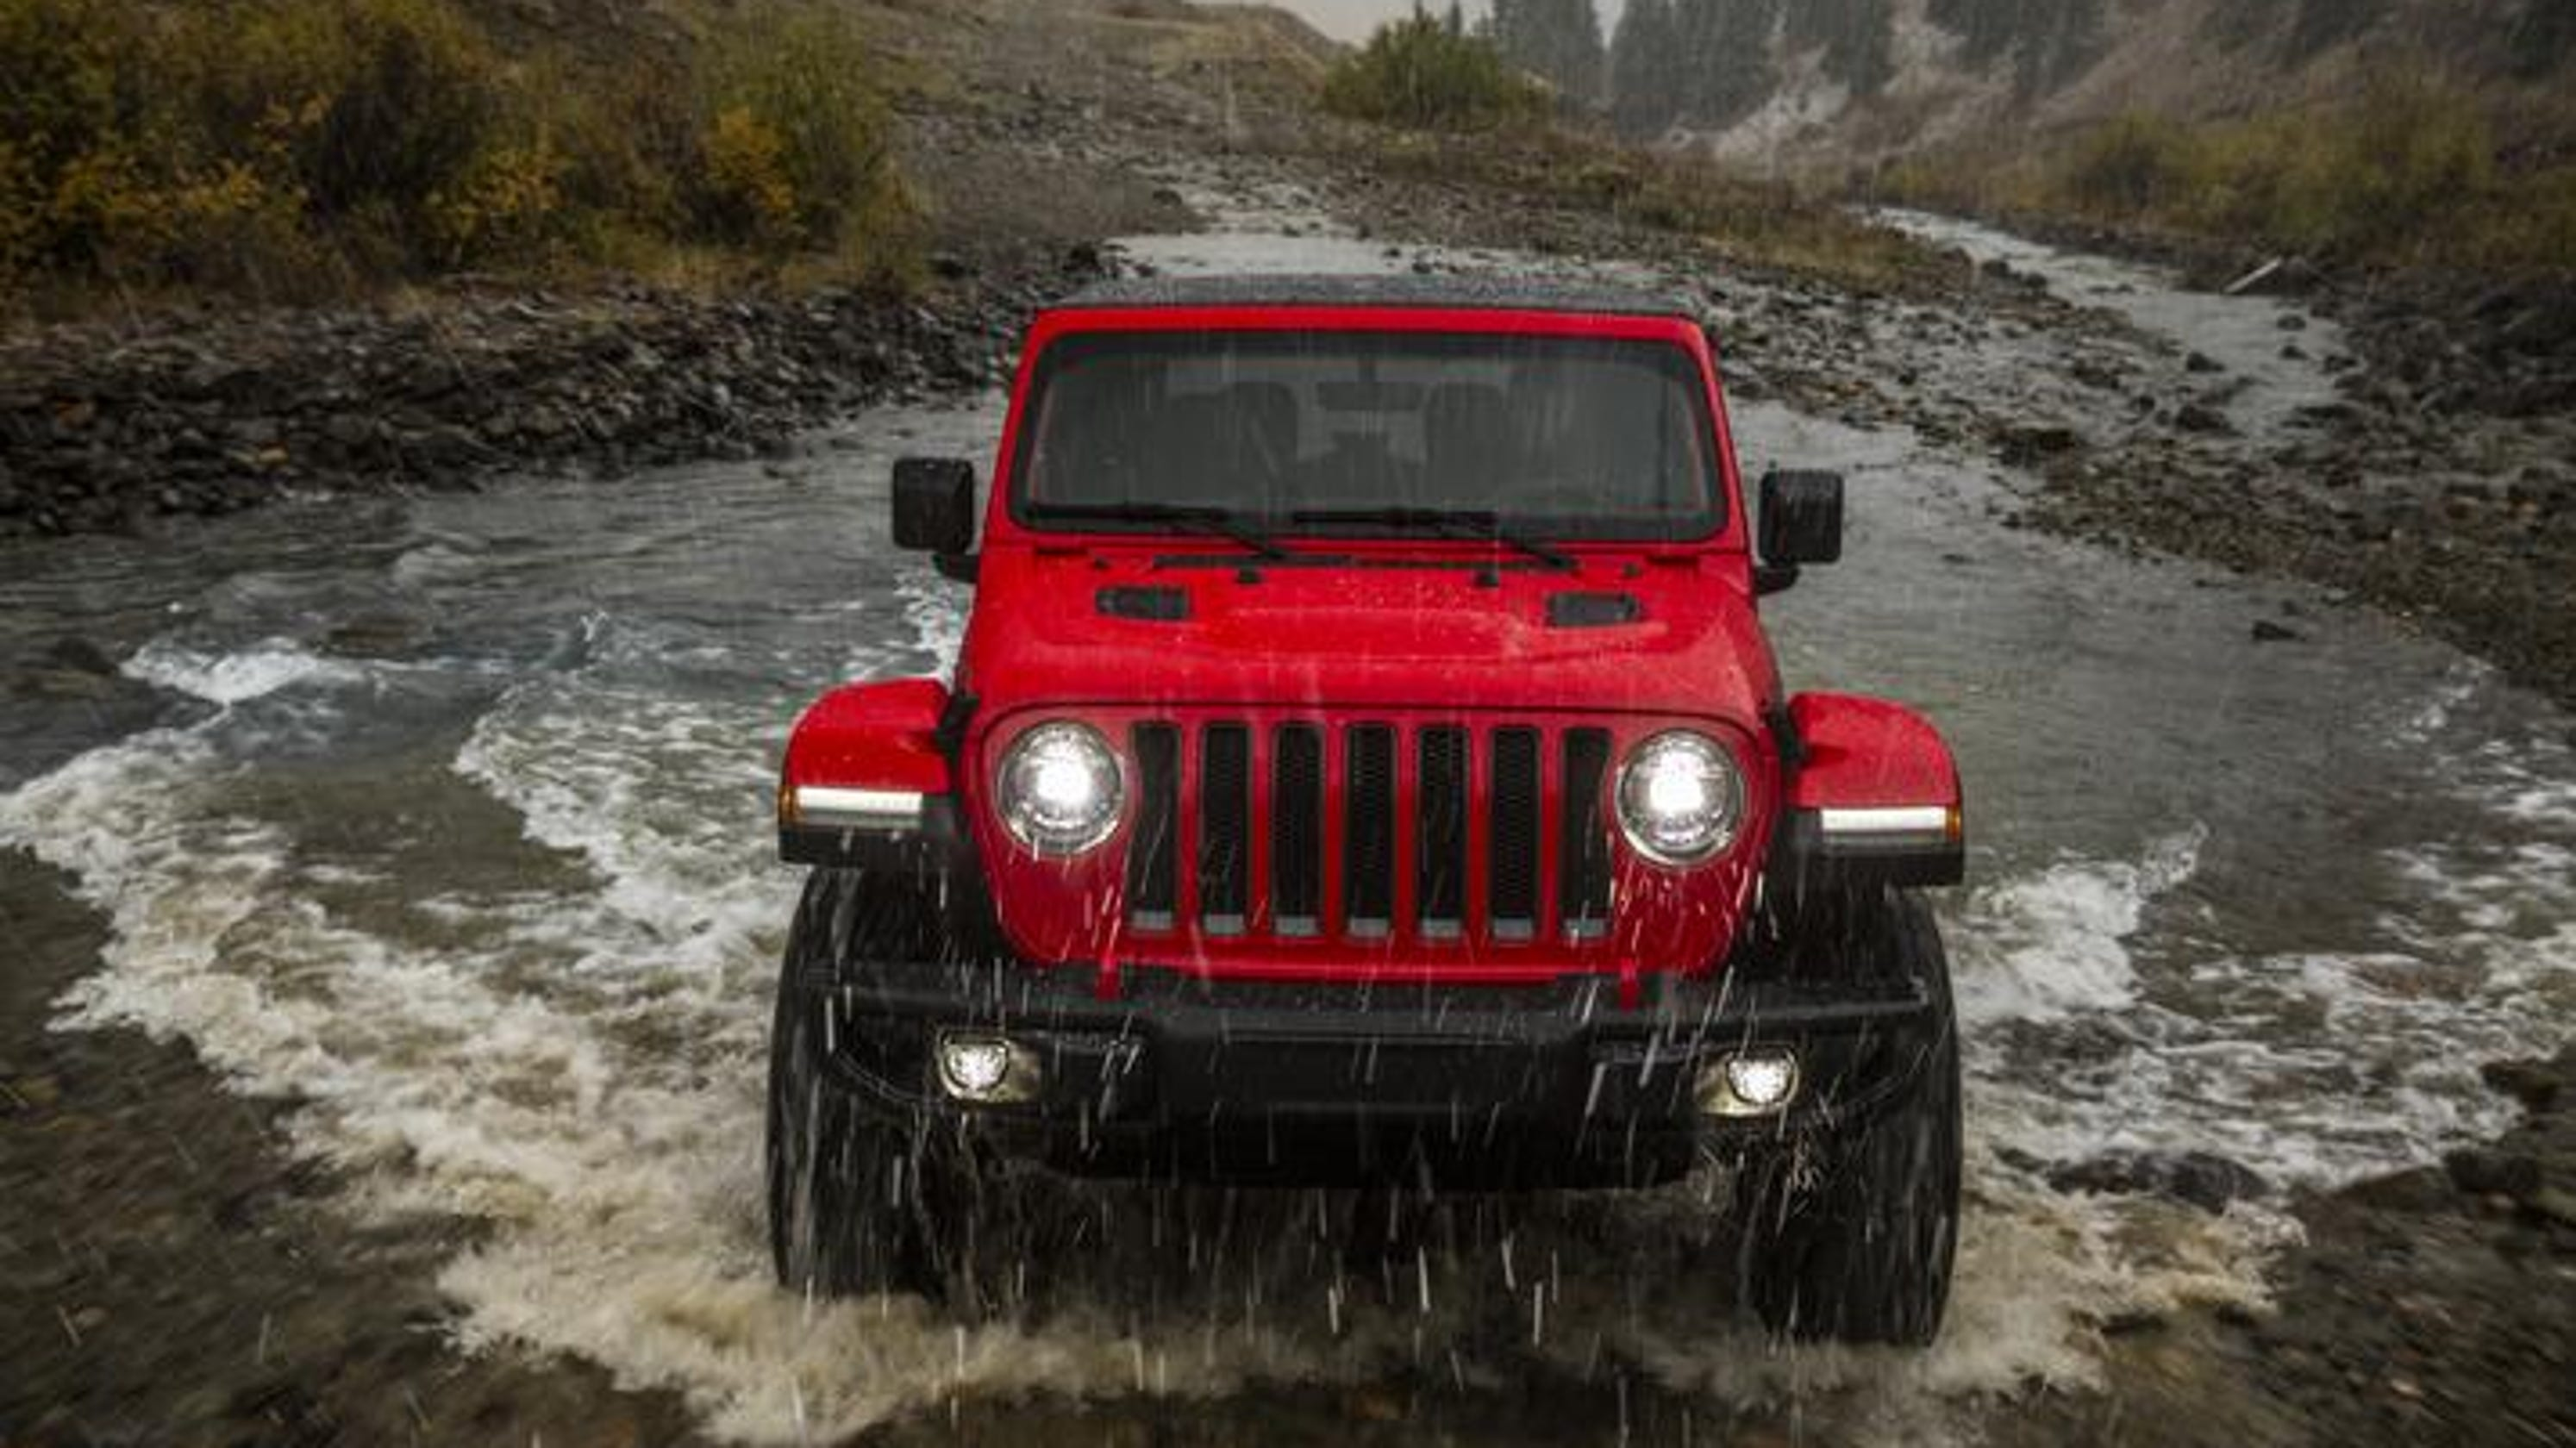 Recall notice says Jeep Wrangler weld issue could lead to crash